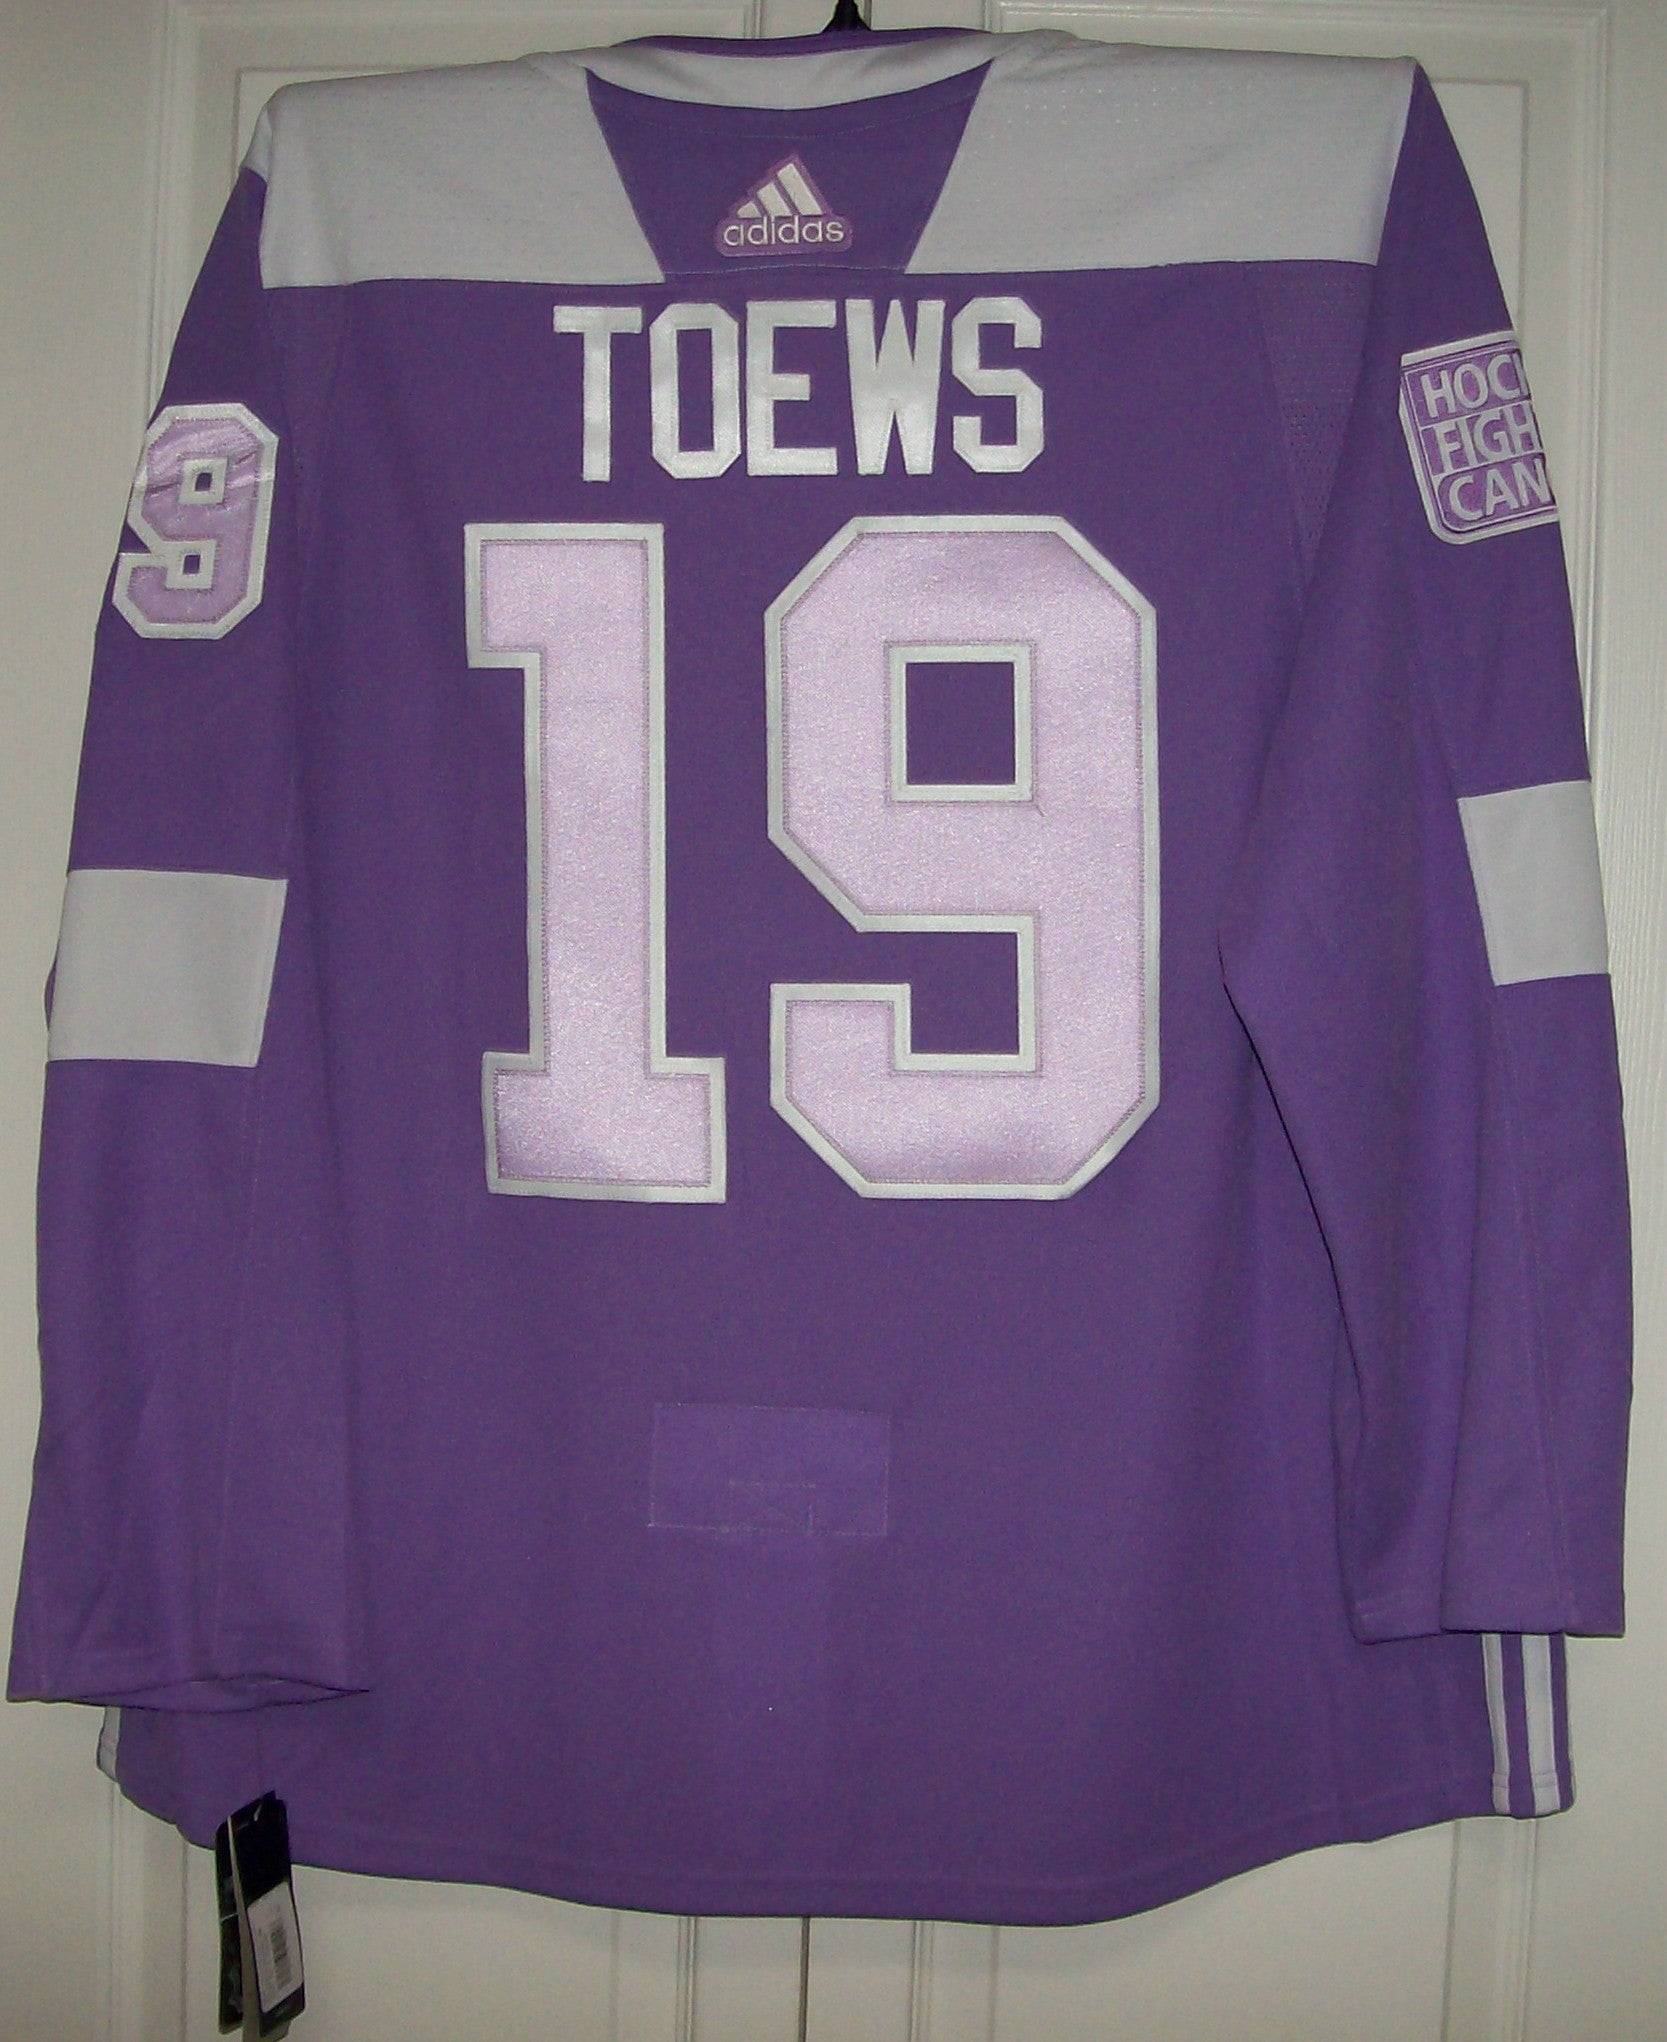 TOEWS Hockey Fights Cancer Chicago Blackhawks Purple 255J Adidas NHL  Authentic Pro Jersey 23ffb0368